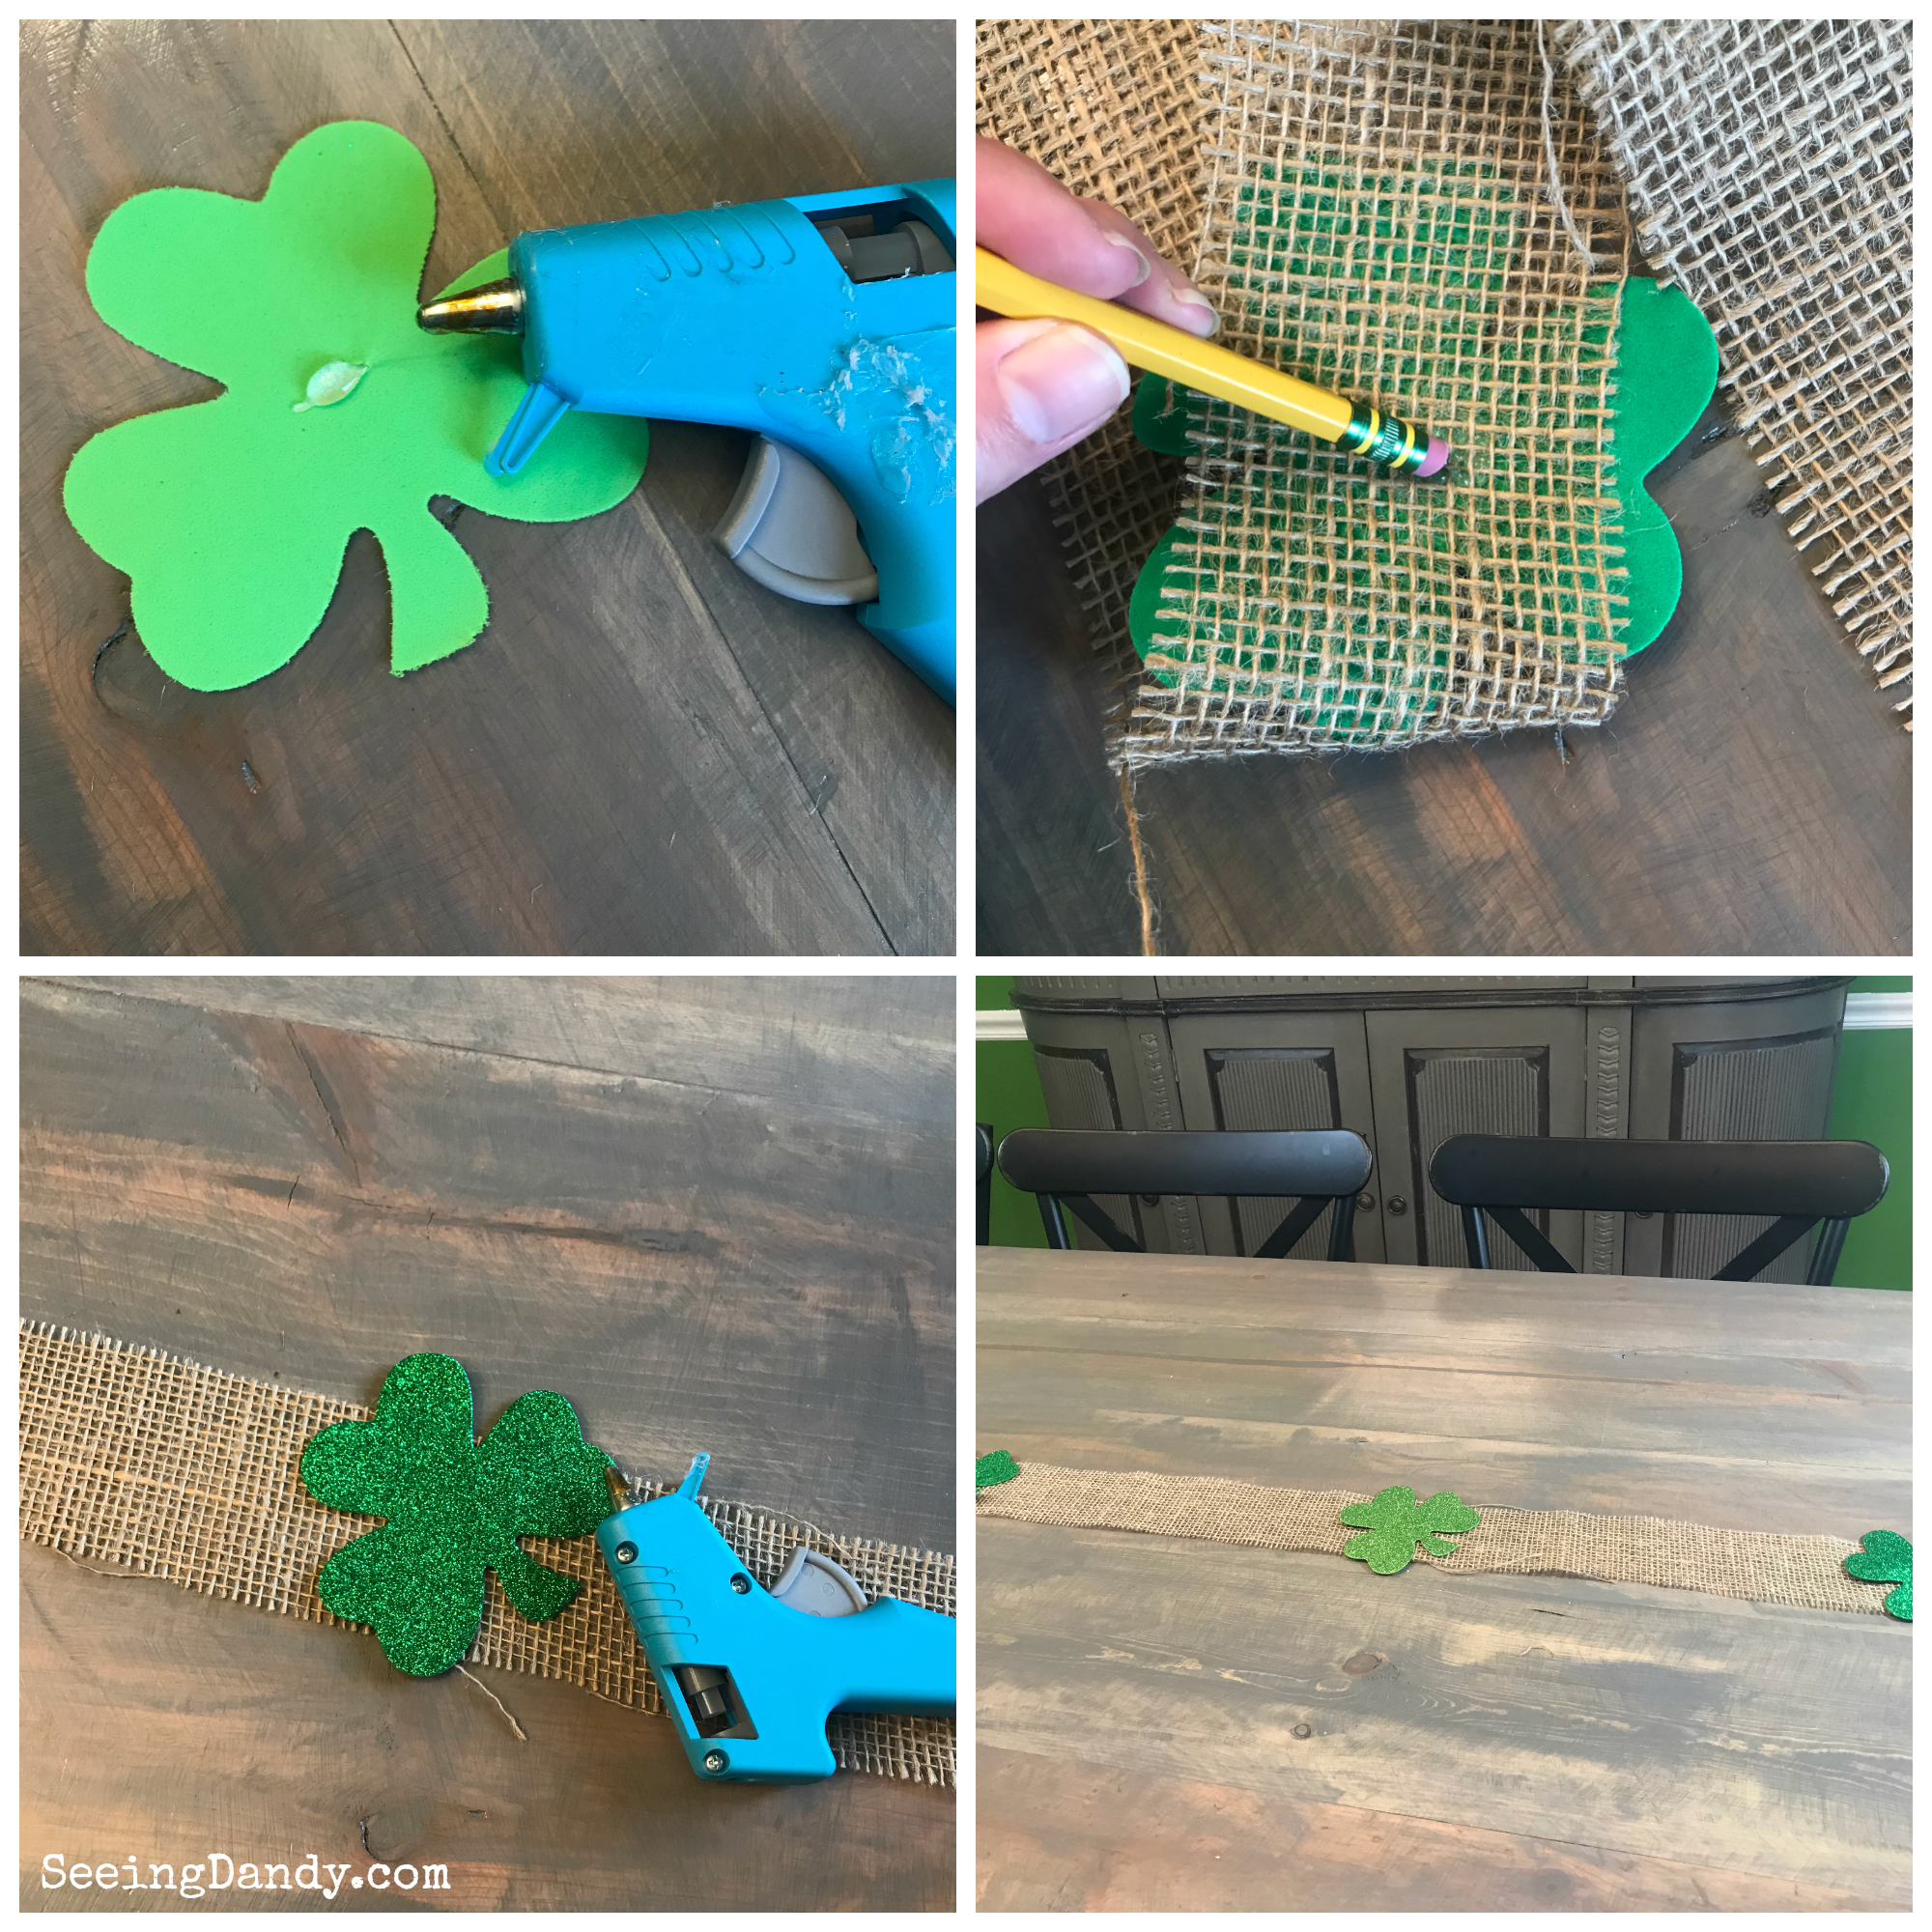 DIY burlap shamrock table runner instructions.